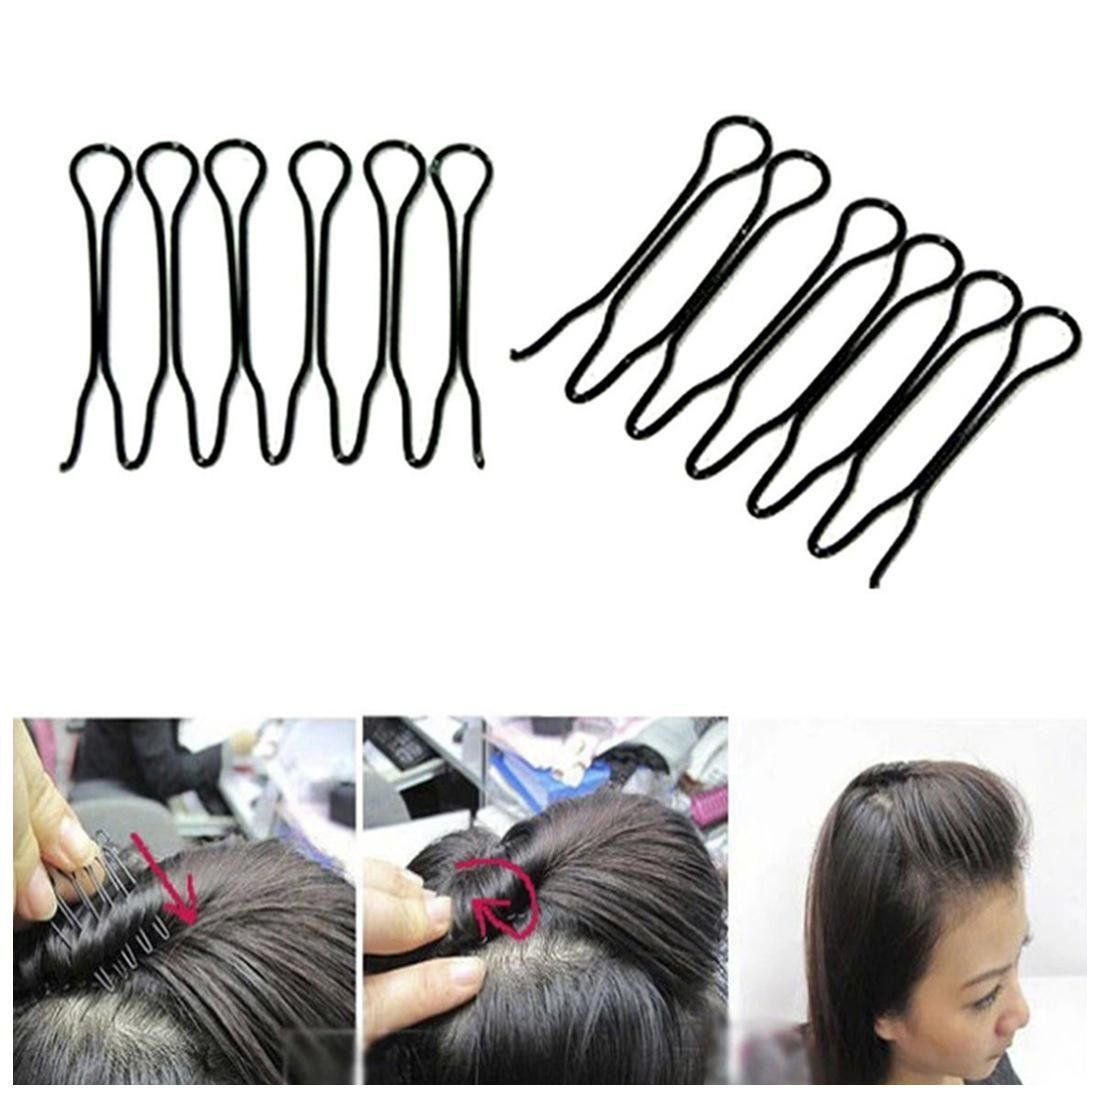 Tools & Accessories Clips Women Pcs To Medium For Hair Pin Twist Accessories Fashion Clip Stylish Spin Spiral Hair 10pcs Great Set Black Long